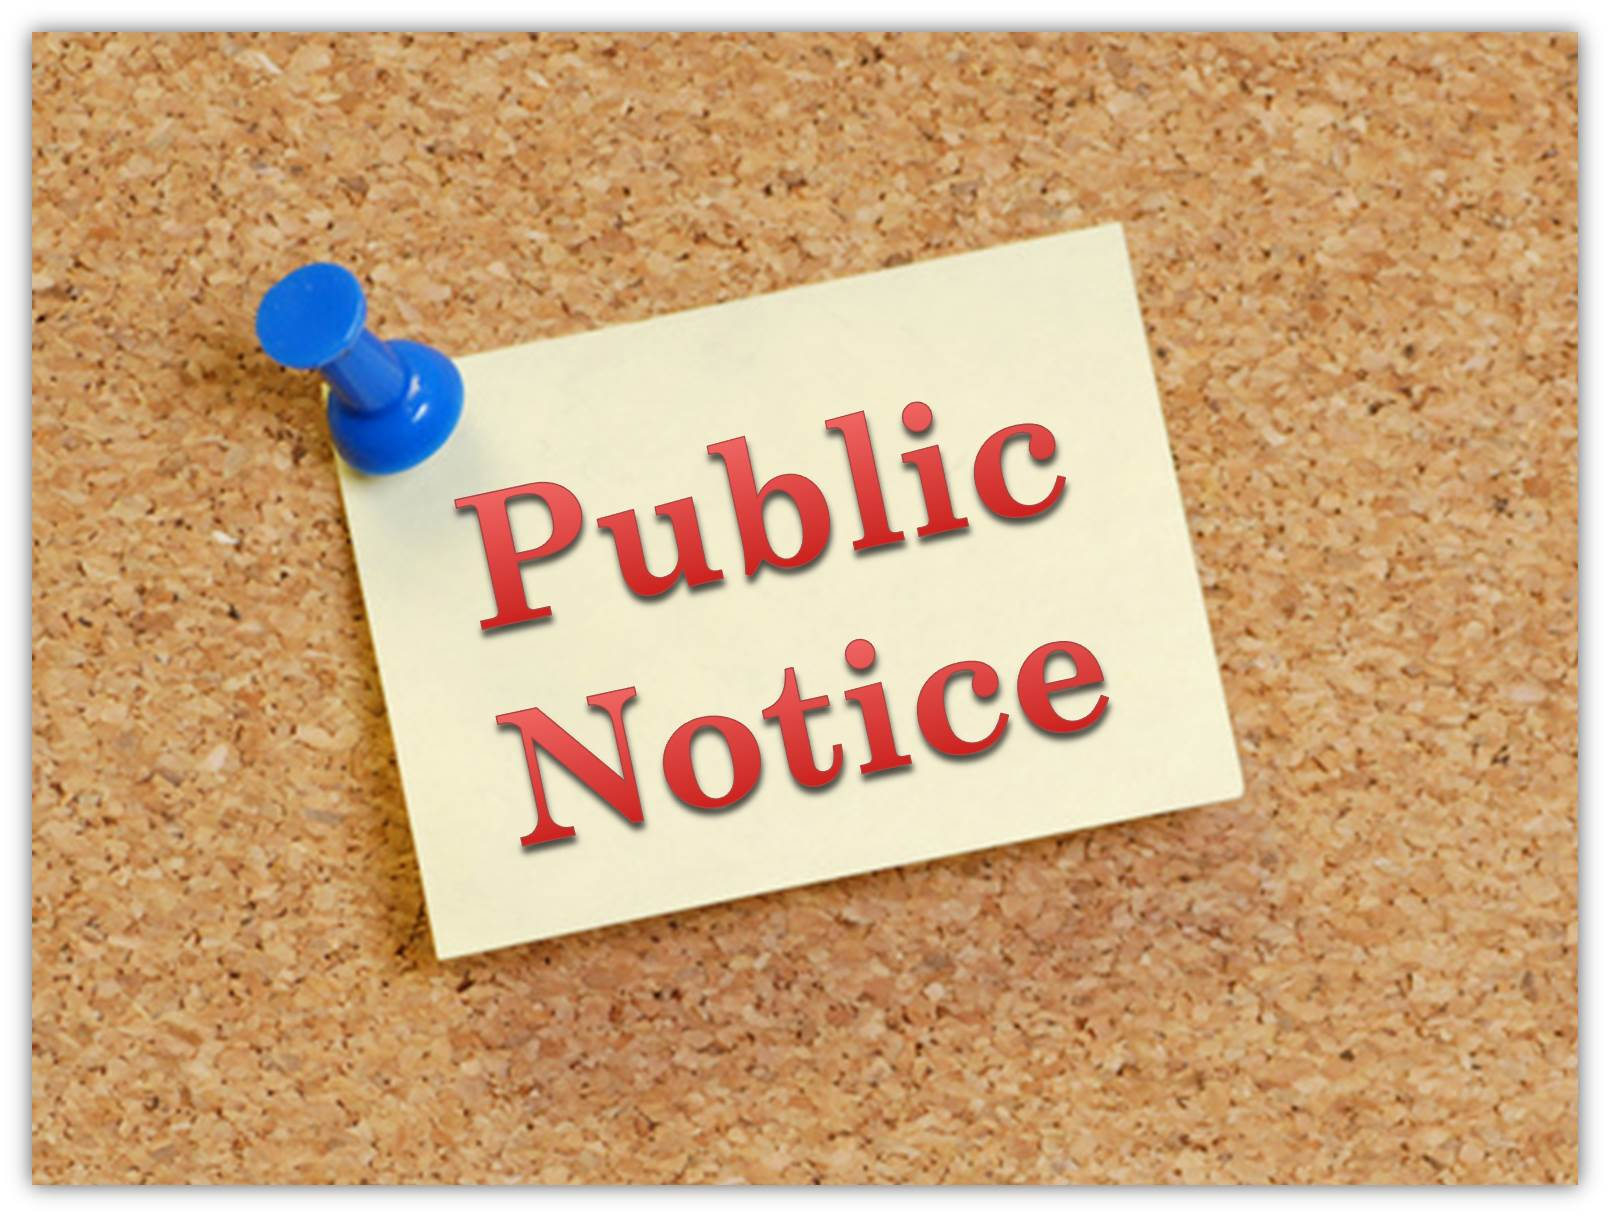 Image result for Public notice